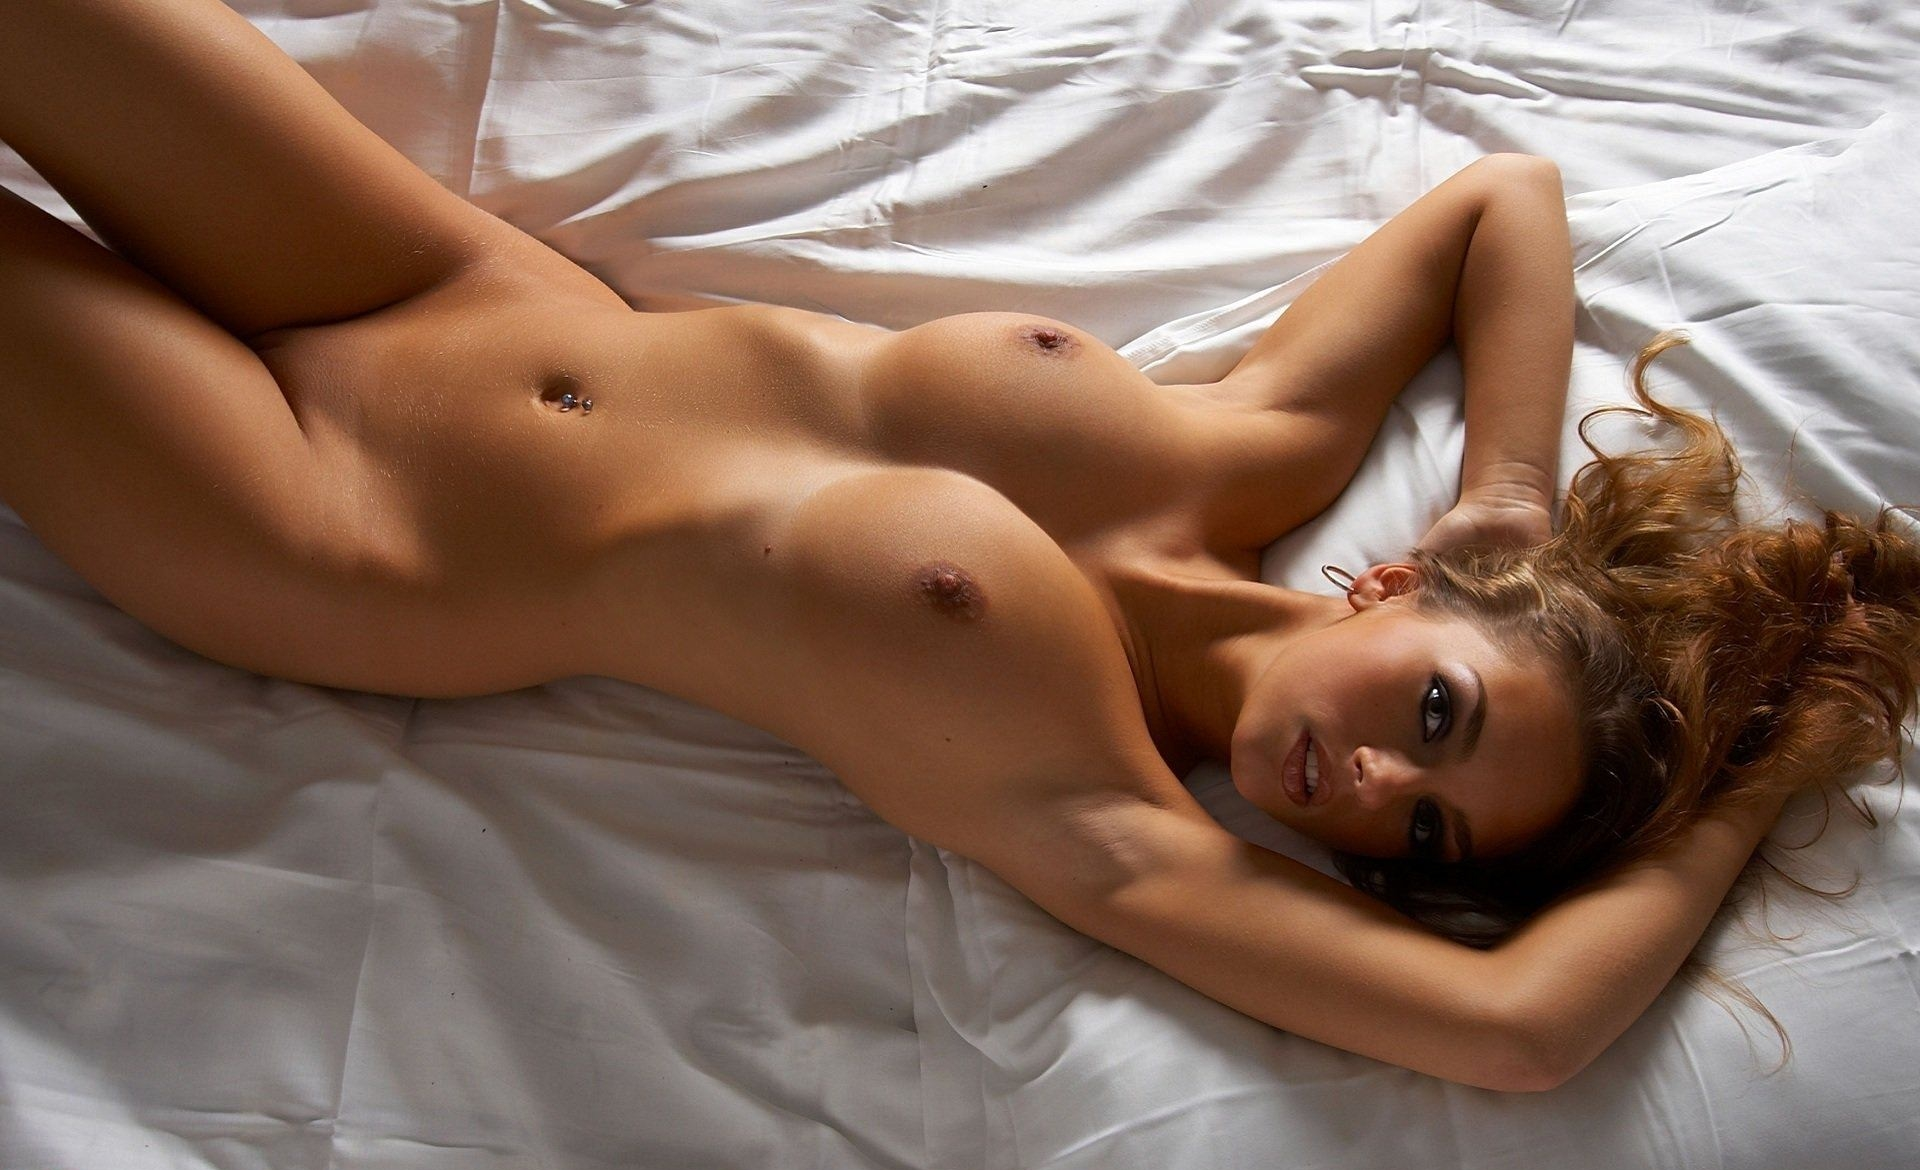 Sexy nice naked girls #10